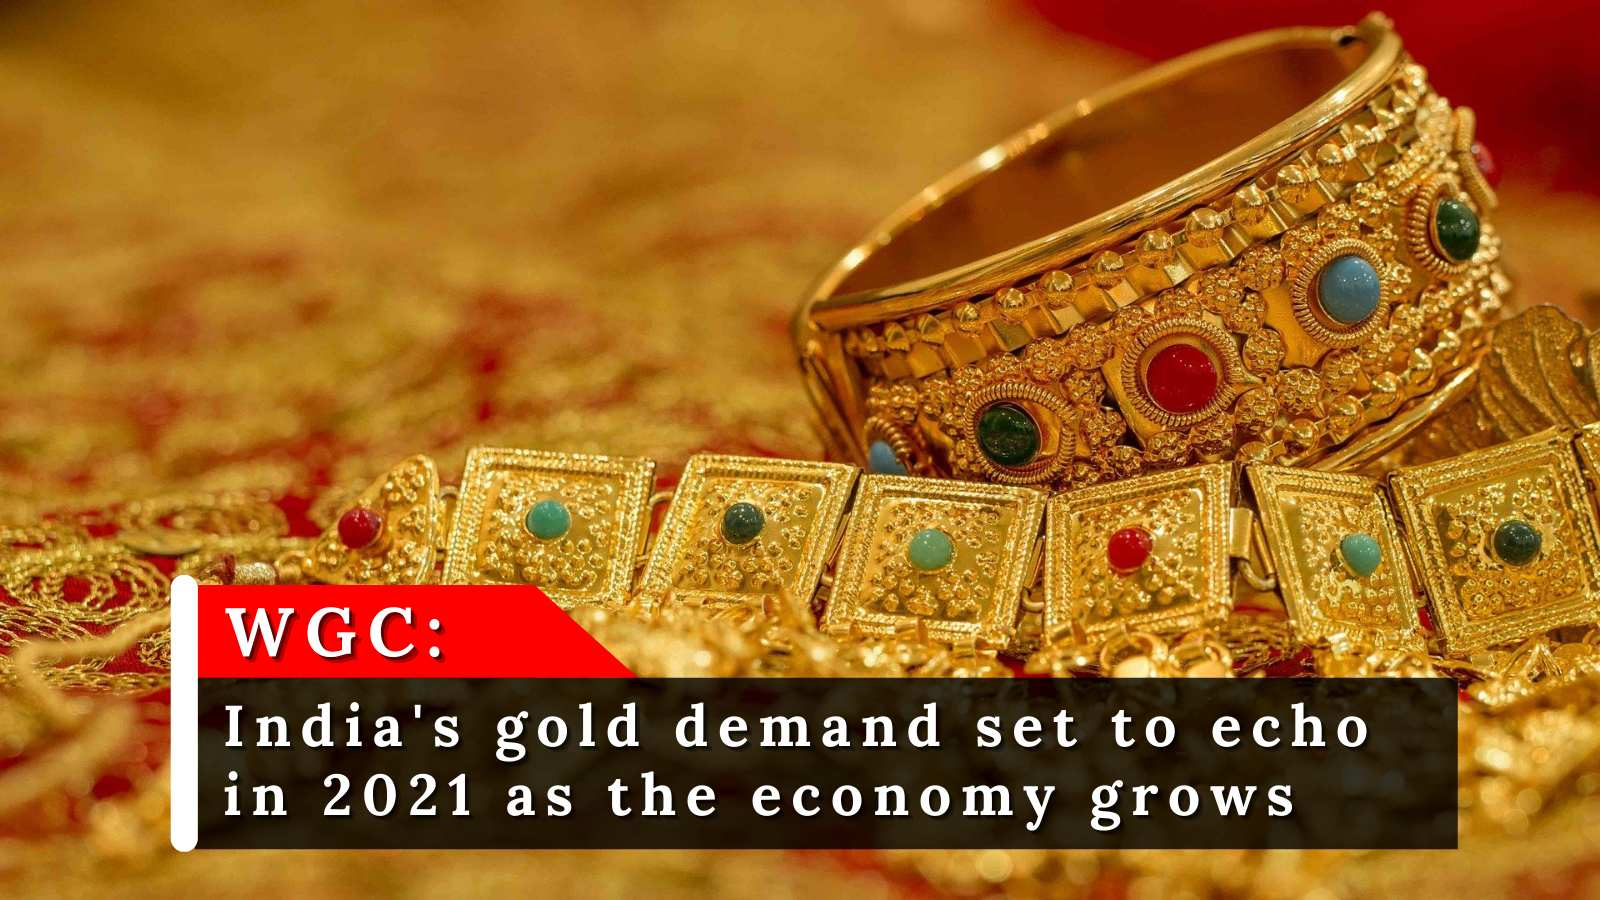 WGC: India's gold demand set to echo in 2021 as the economy grows